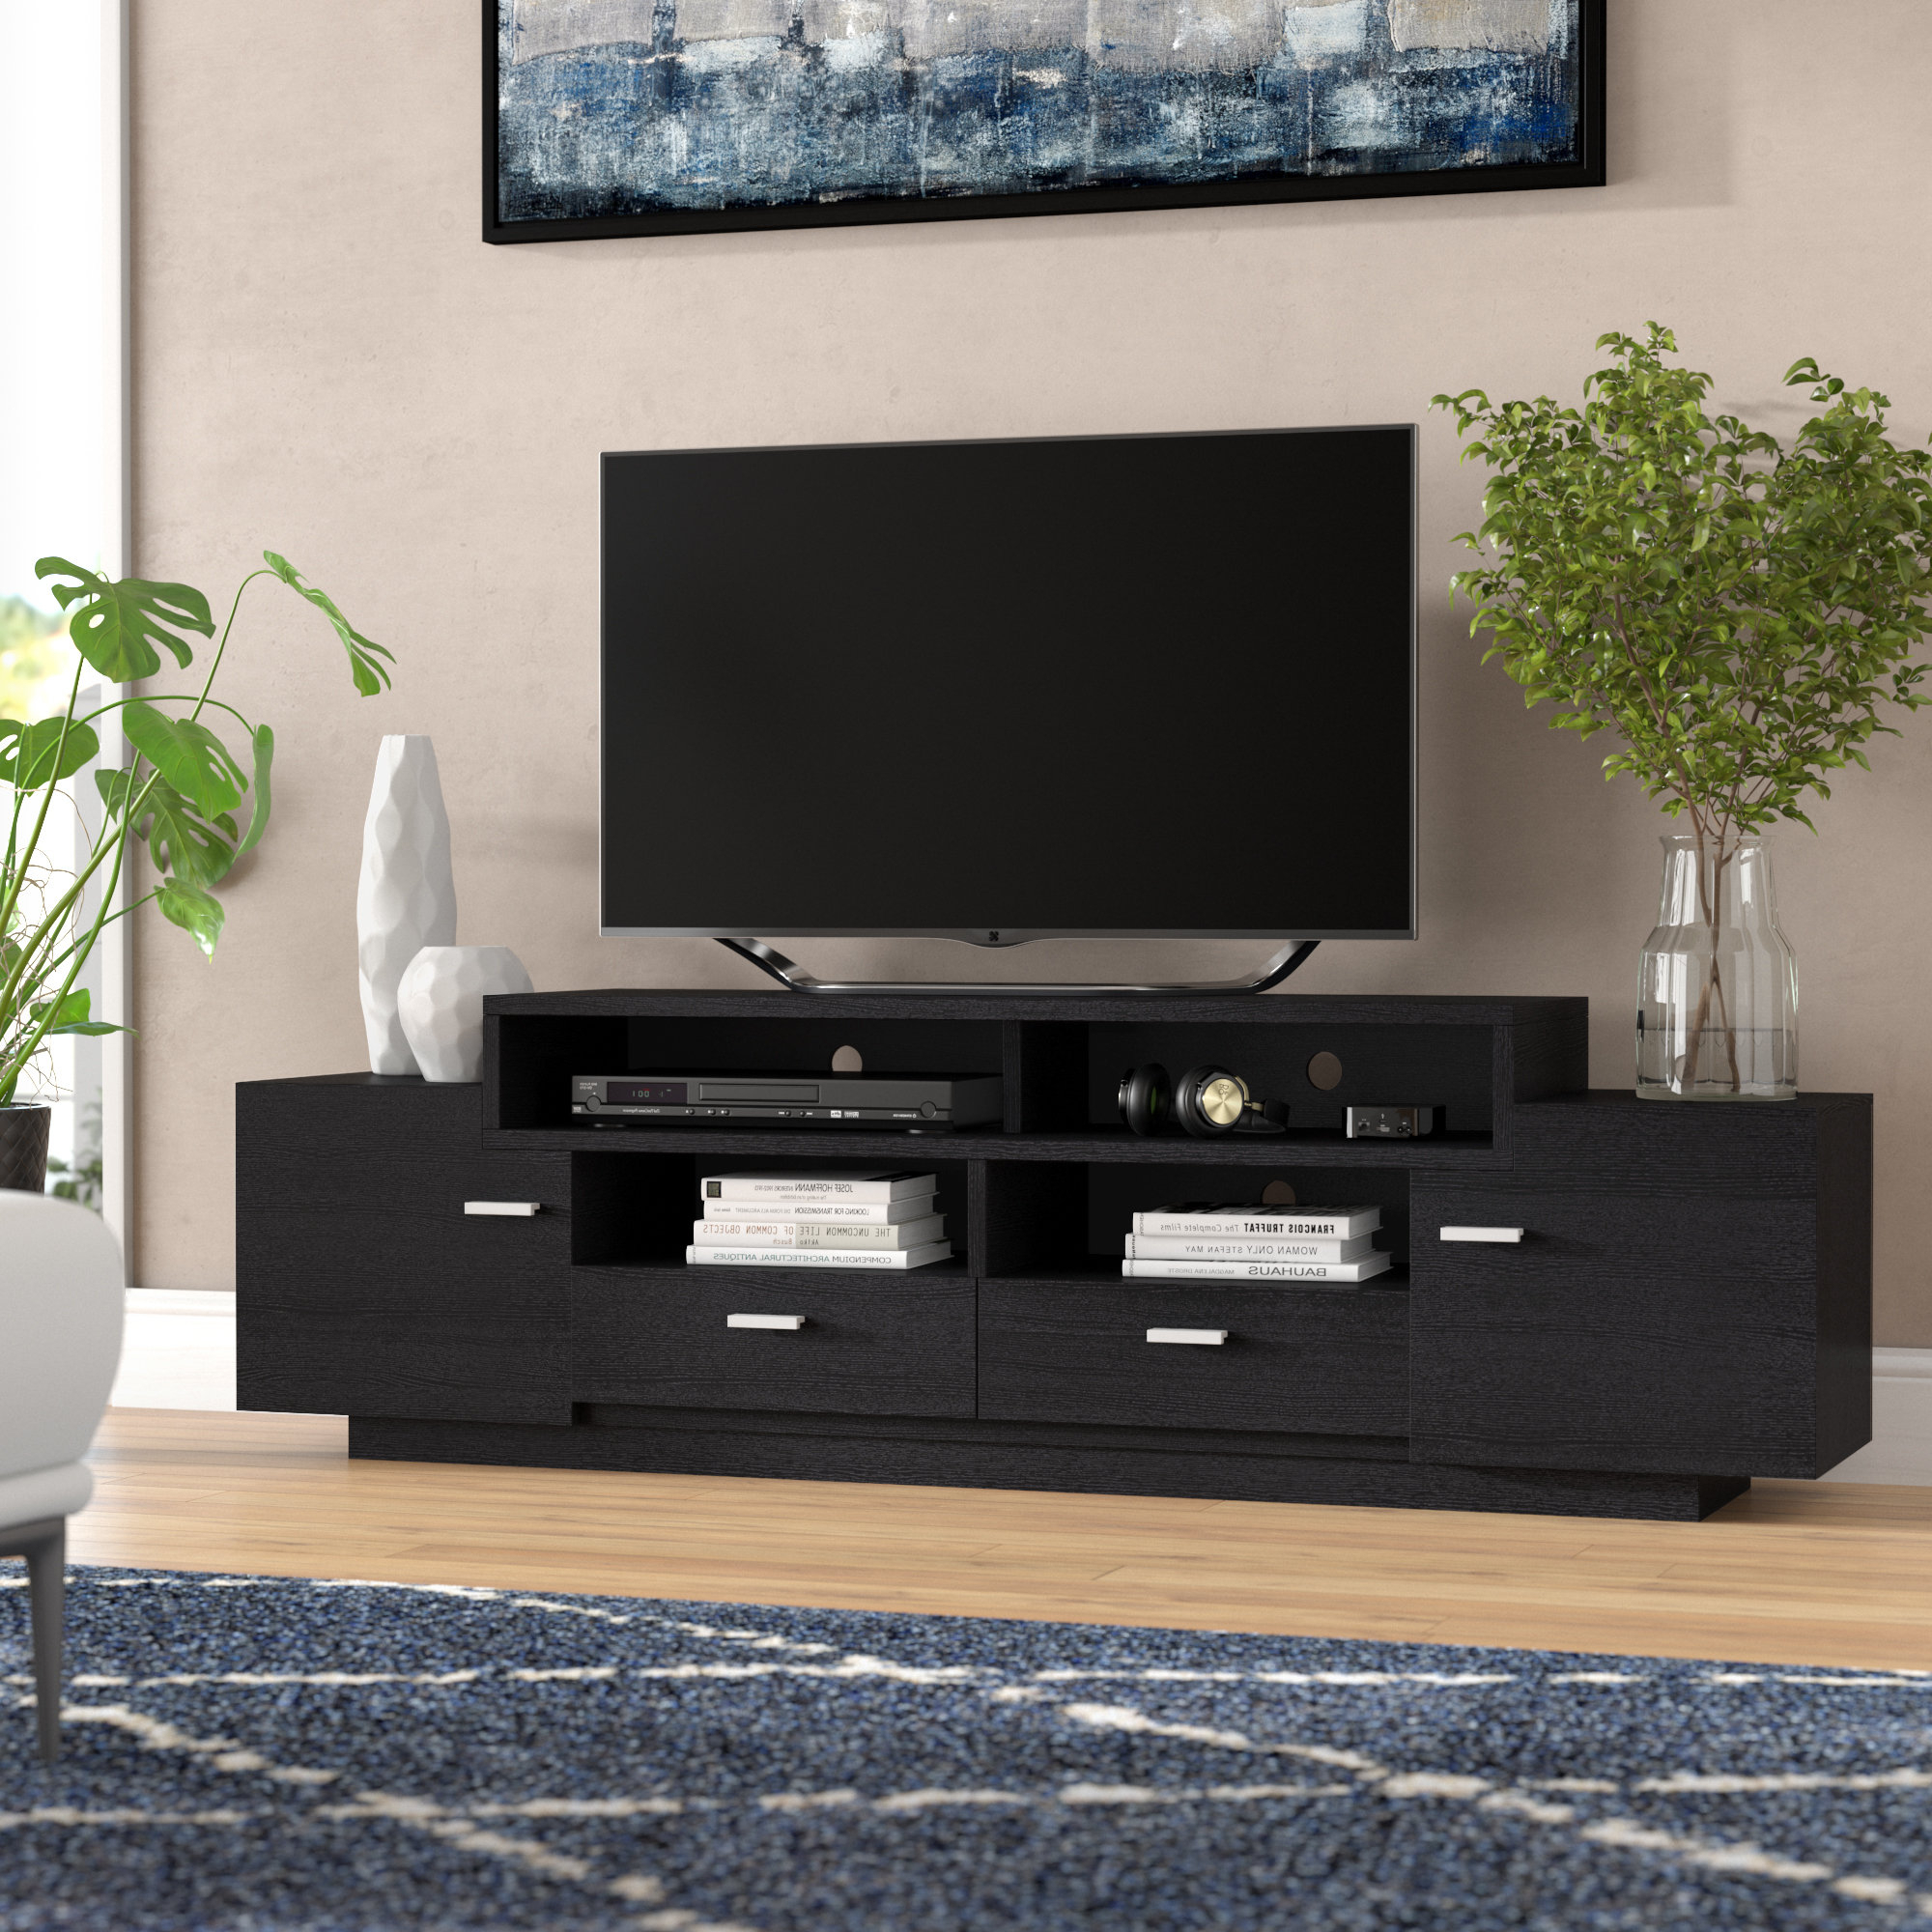 65 Inch Tv Stands With Integrated Mount Pertaining To Well Known 70+ Inch Tv Stands You'll Love (View 4 of 20)